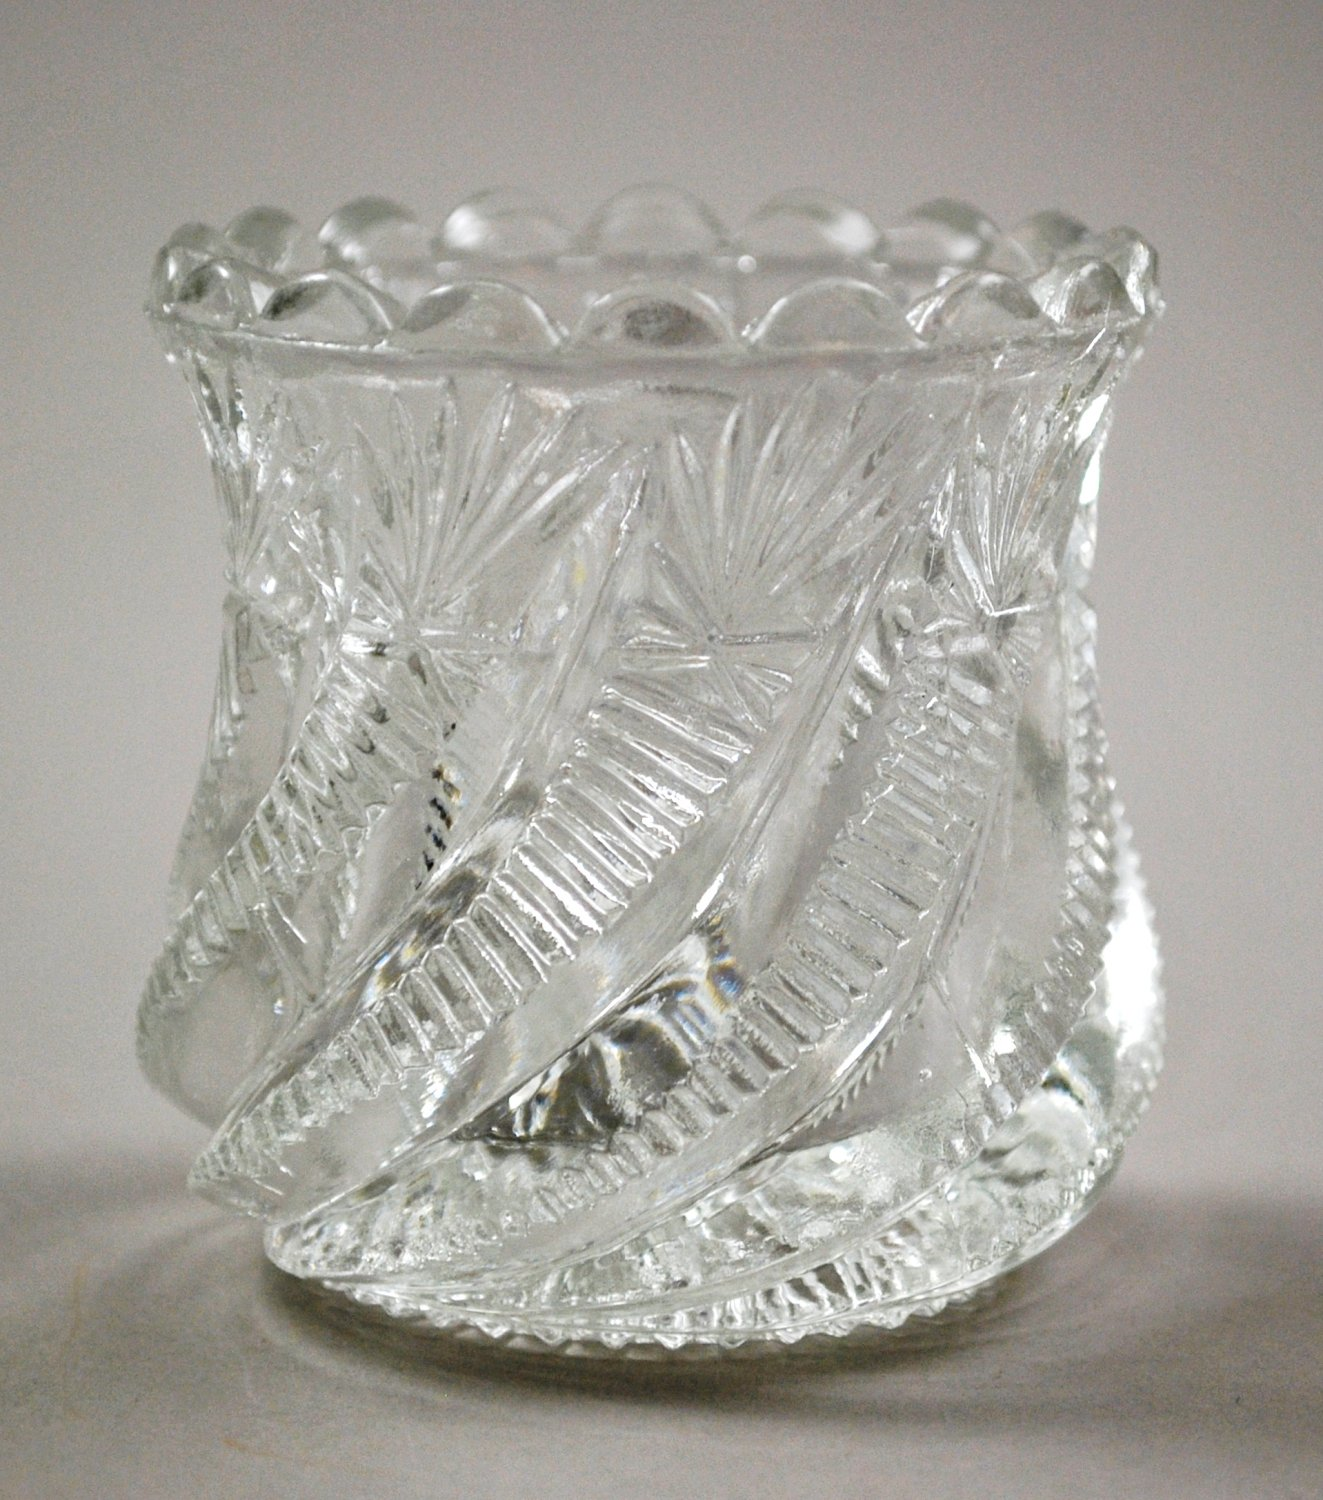 Bryce, Higbee 1905 Swirl and Panel Clear Glass Toothpick Holder